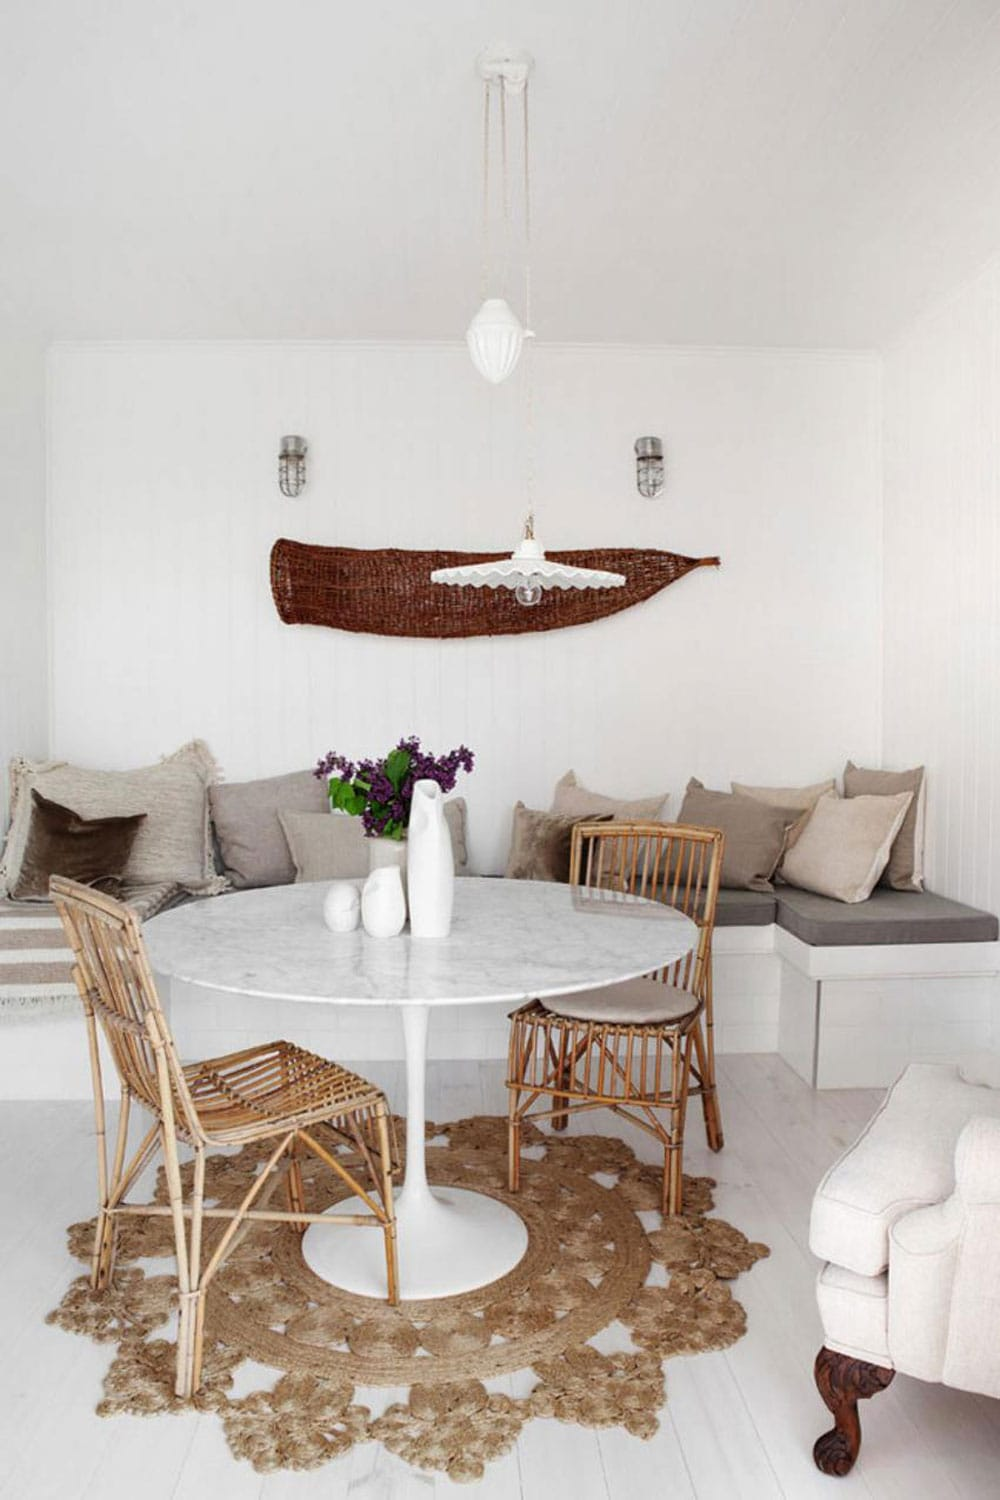 Saarinen table, round rug, banquette seating with pillows